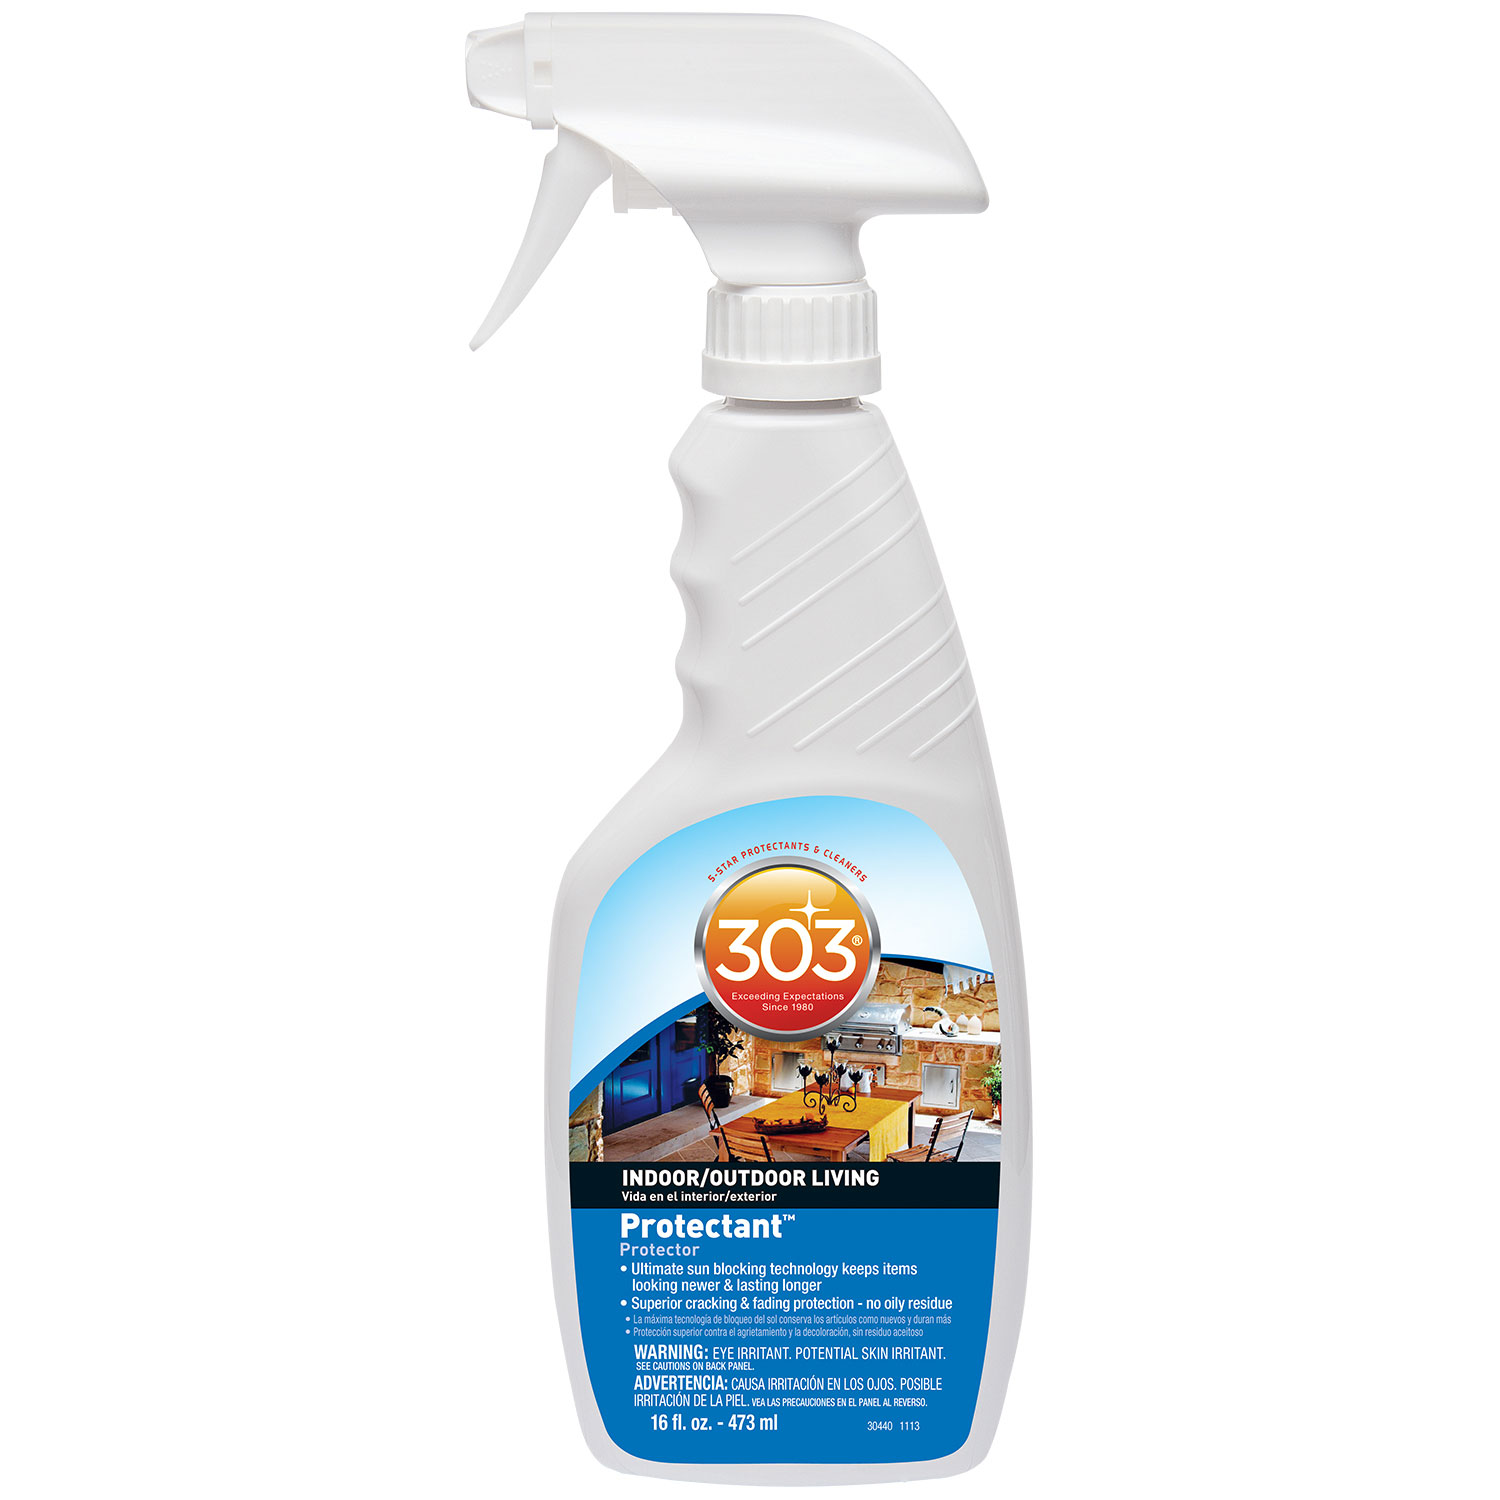 Protectant, 303, 16oz Spray Bottle